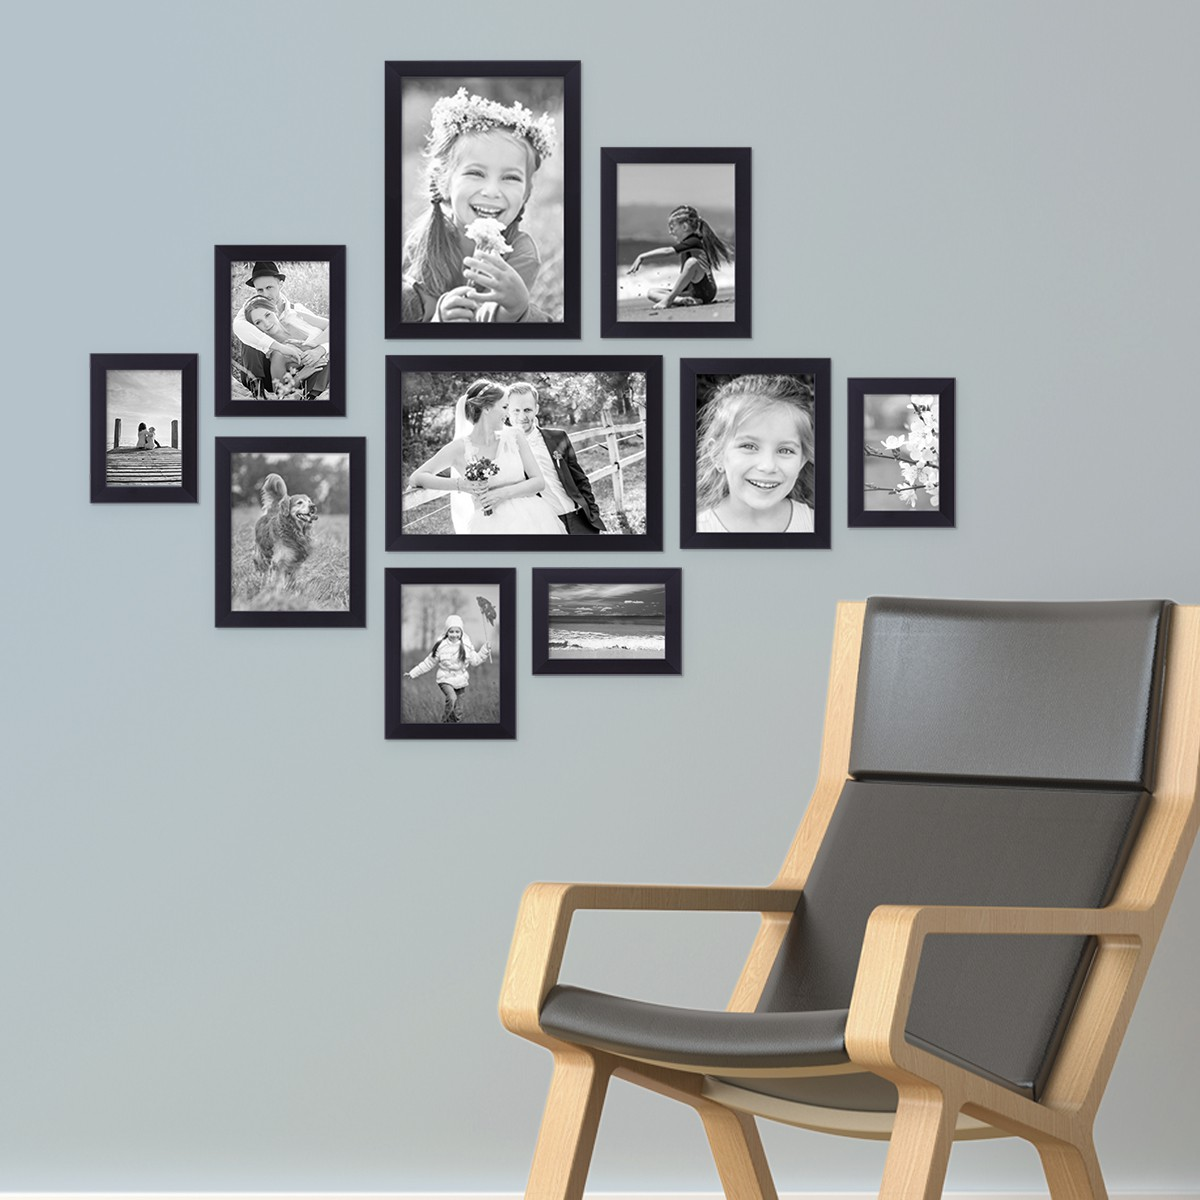 bilderrahmen set mdf modern weiss schwarz bilder galerie foto collage rahmen ebay. Black Bedroom Furniture Sets. Home Design Ideas